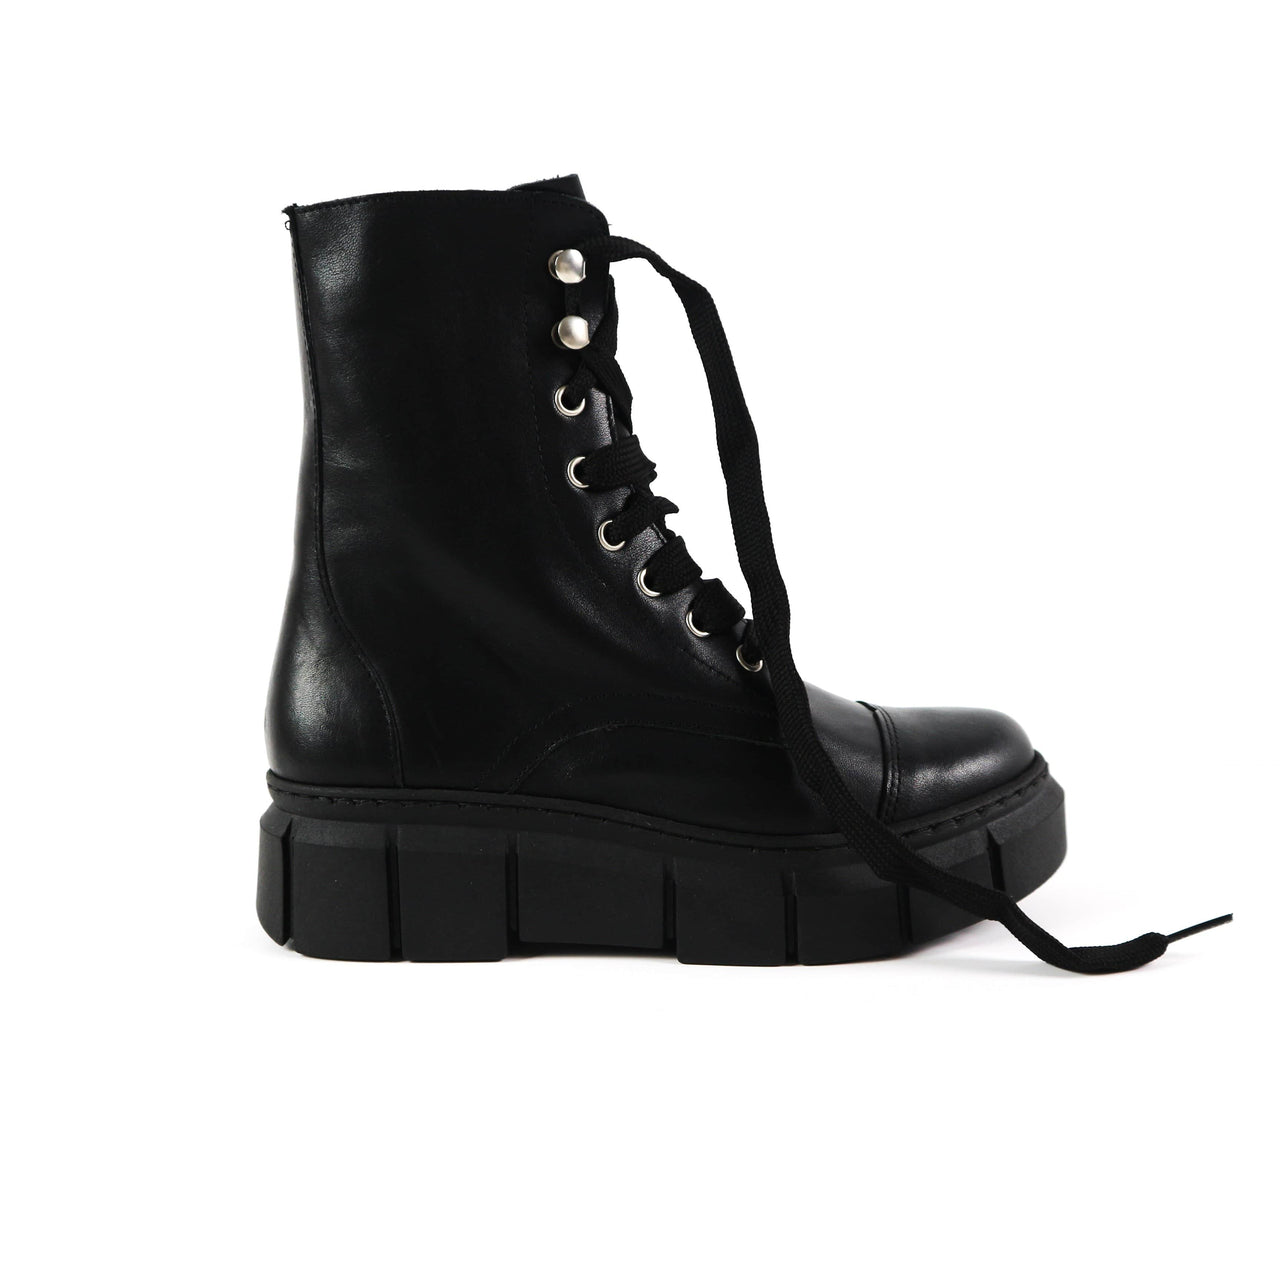 Funky Black Boots   BECKY